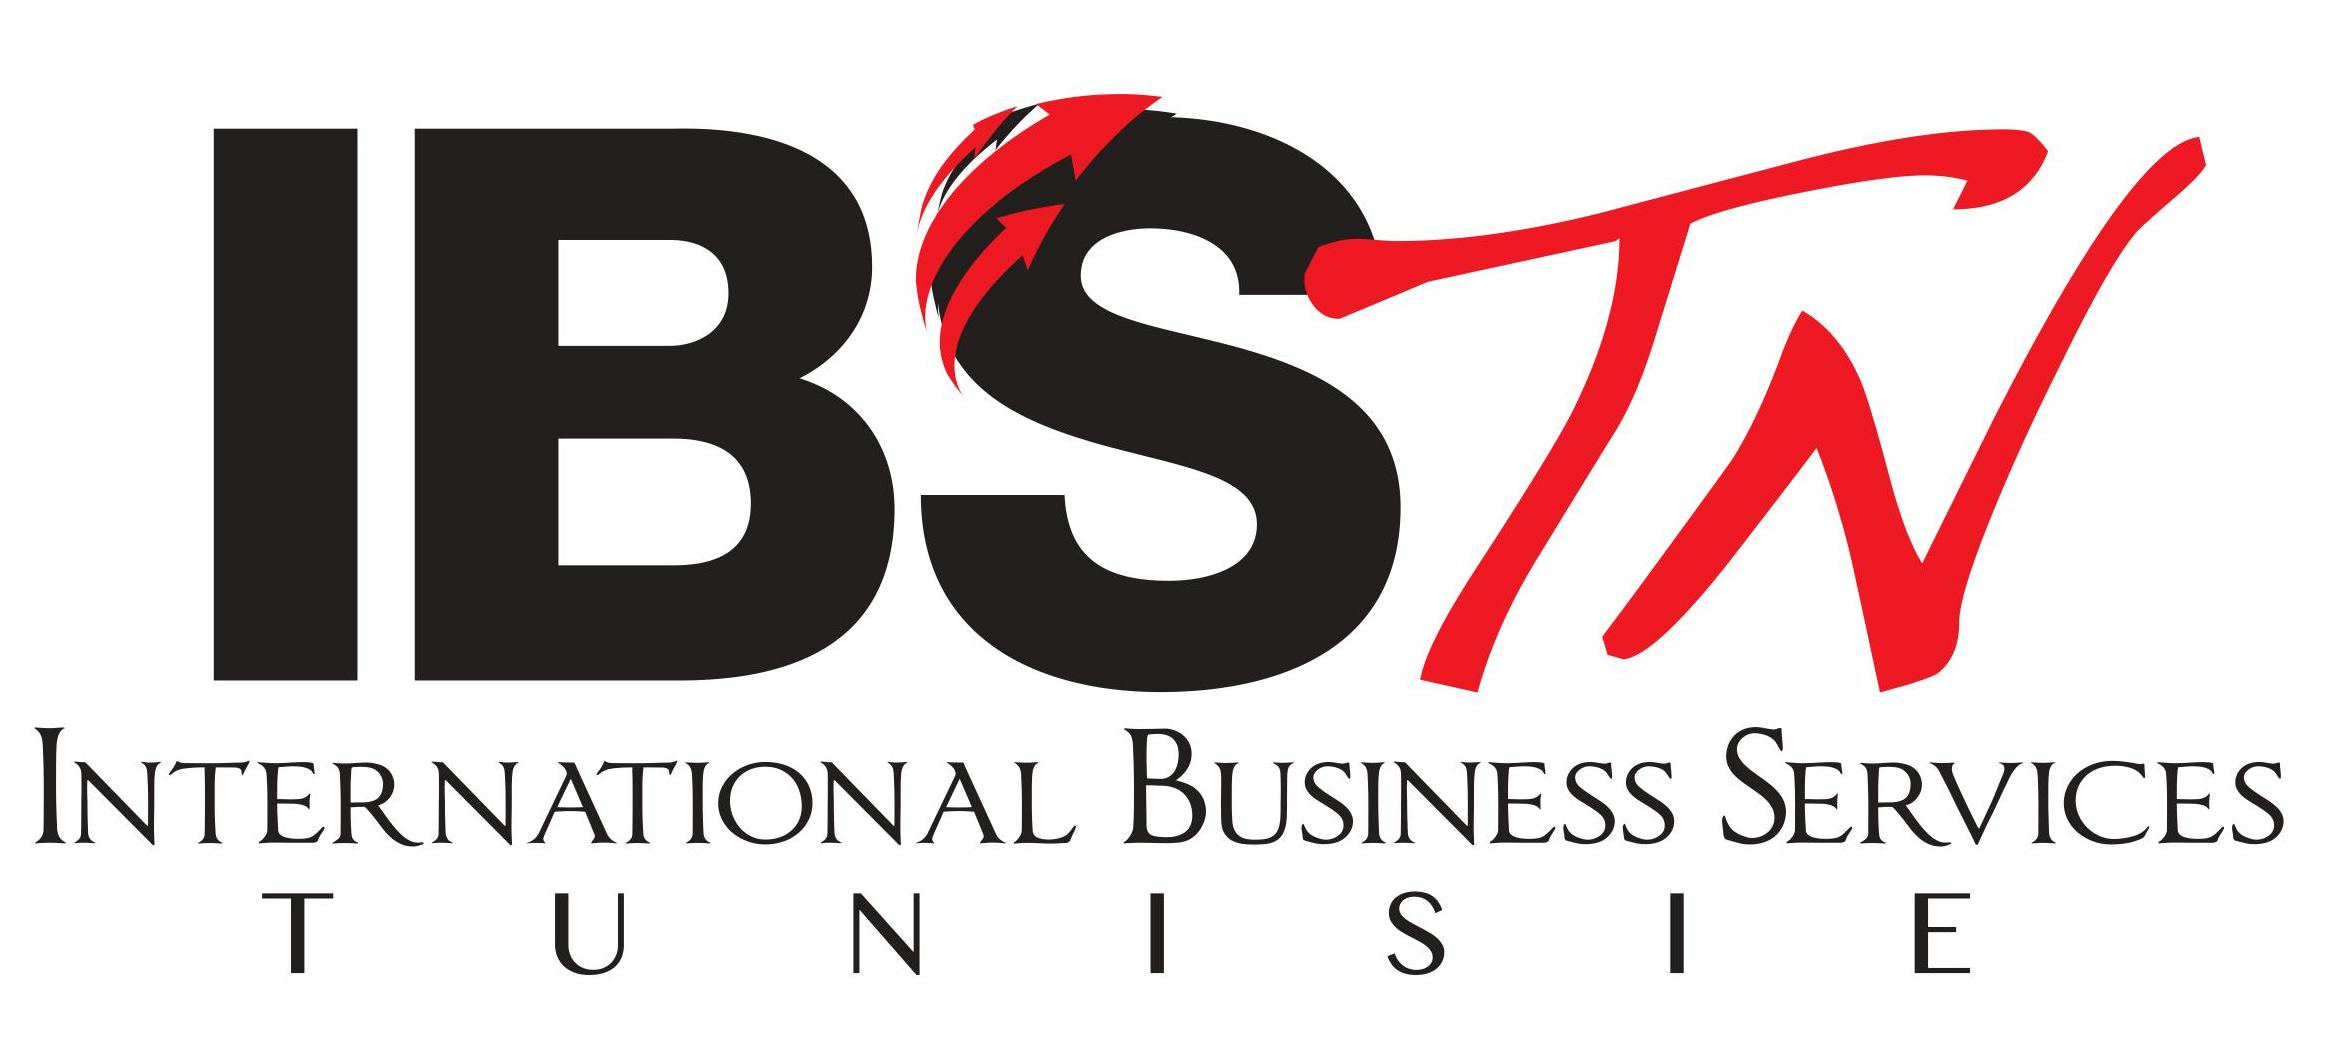 INTERNATIONAL BUSINESS SERVICES TUNISIE